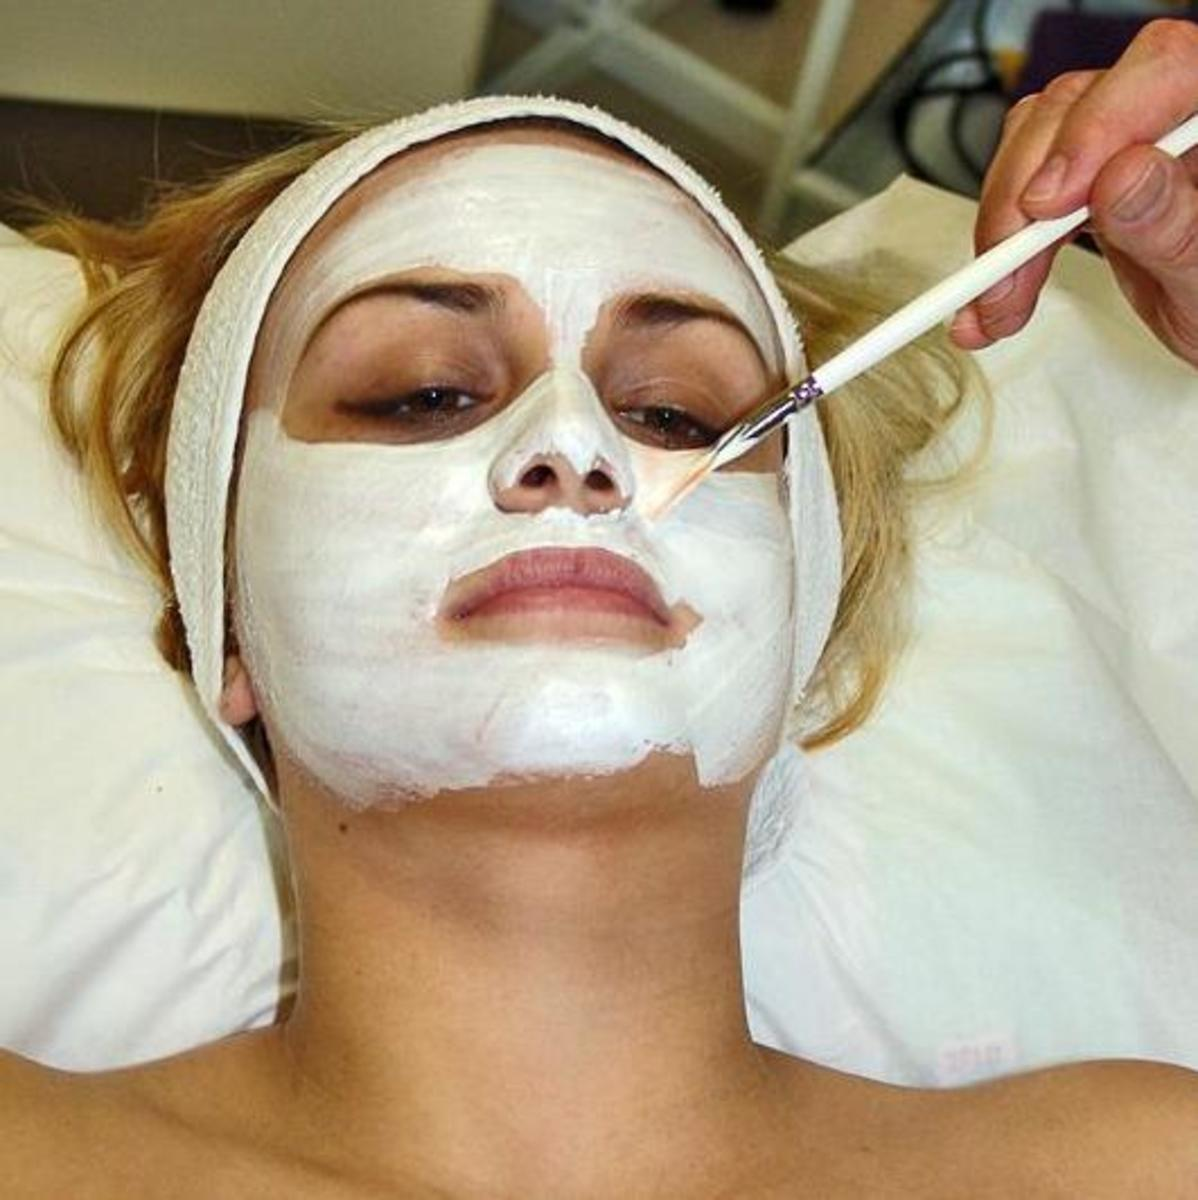 Microdermabrasion, Dermabrasion,  and Plastic Surgery Procedures With Photos